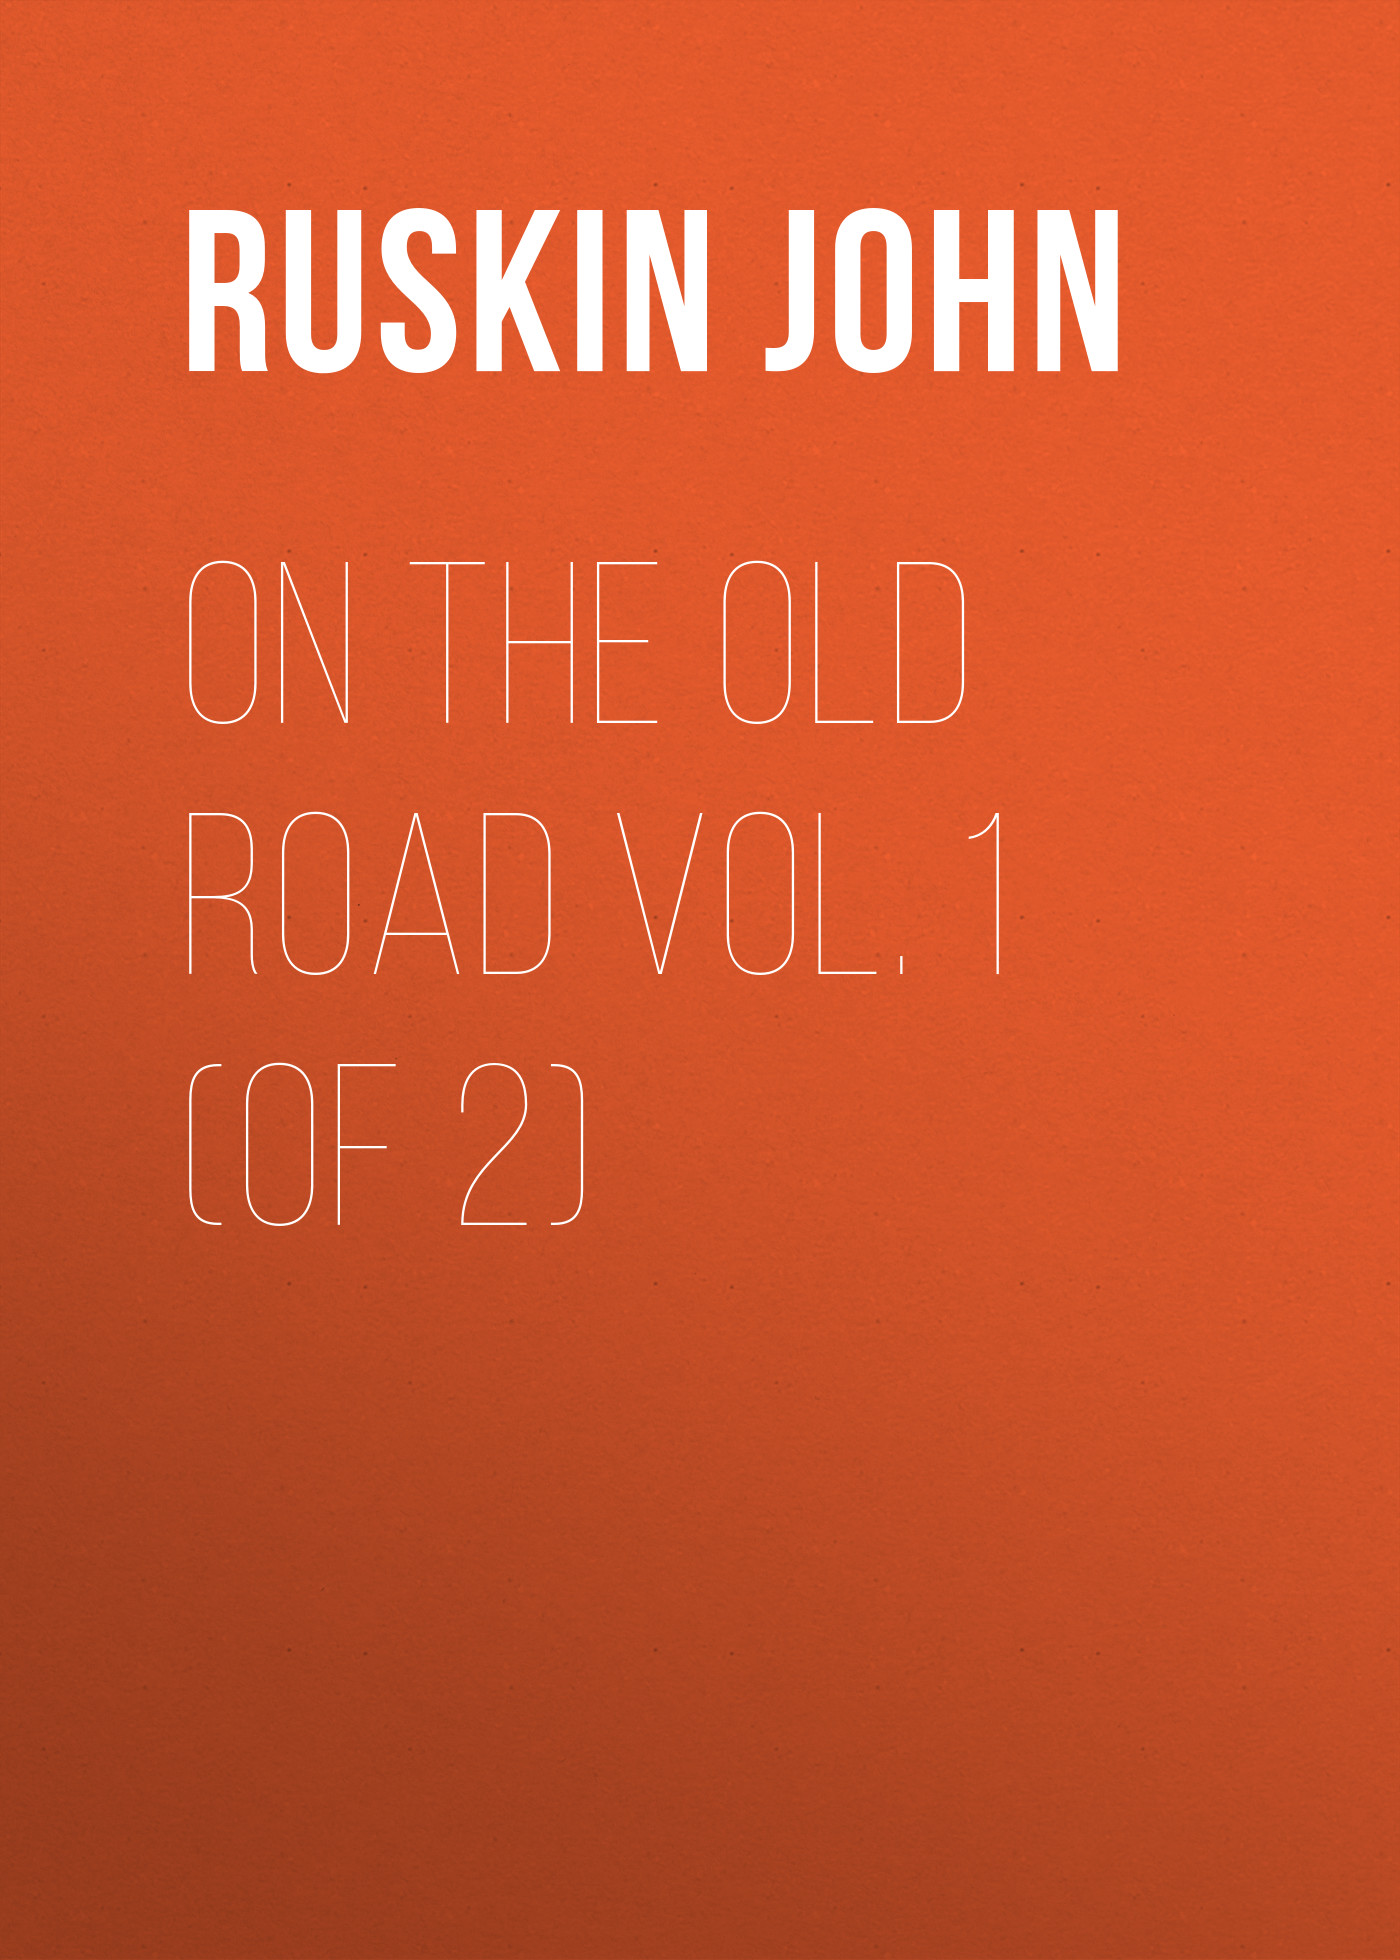 Ruskin John On the Old Road Vol. 1 (of 2) ruskin john the stones of venice volume 1 of 3